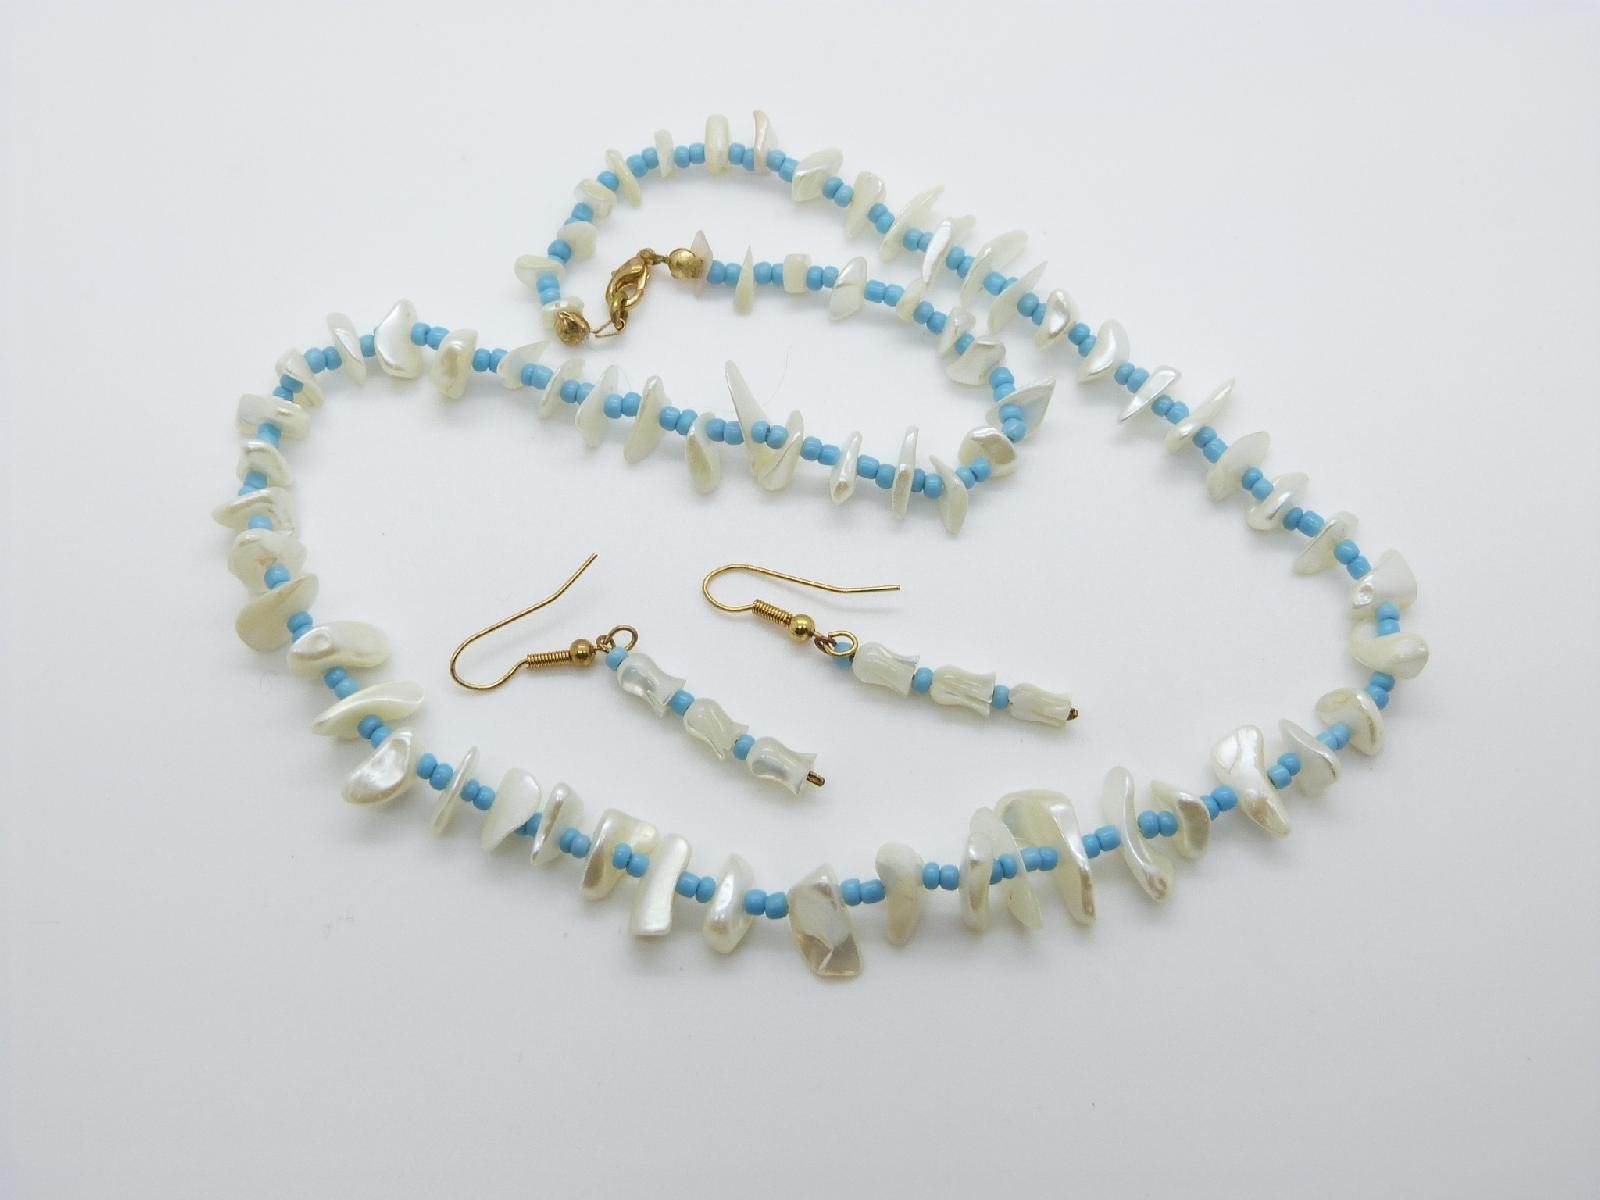 £12.00 - Lovely Mother of Pearl Chip and Glass Turquoise Bead Necklace and Earrings Set